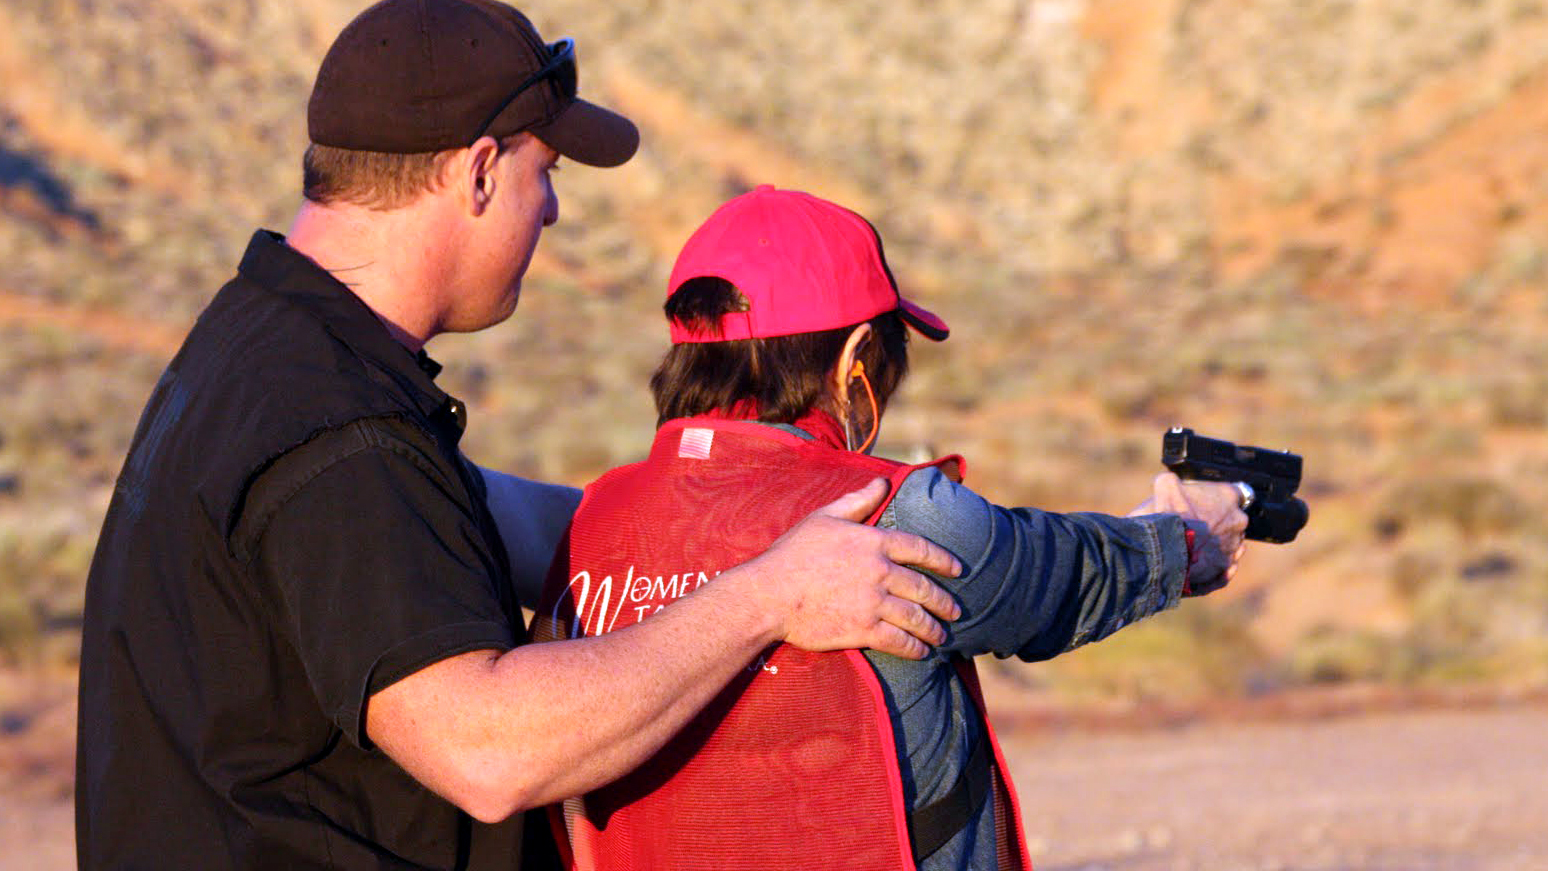 The Rules of NRA Gun Safety